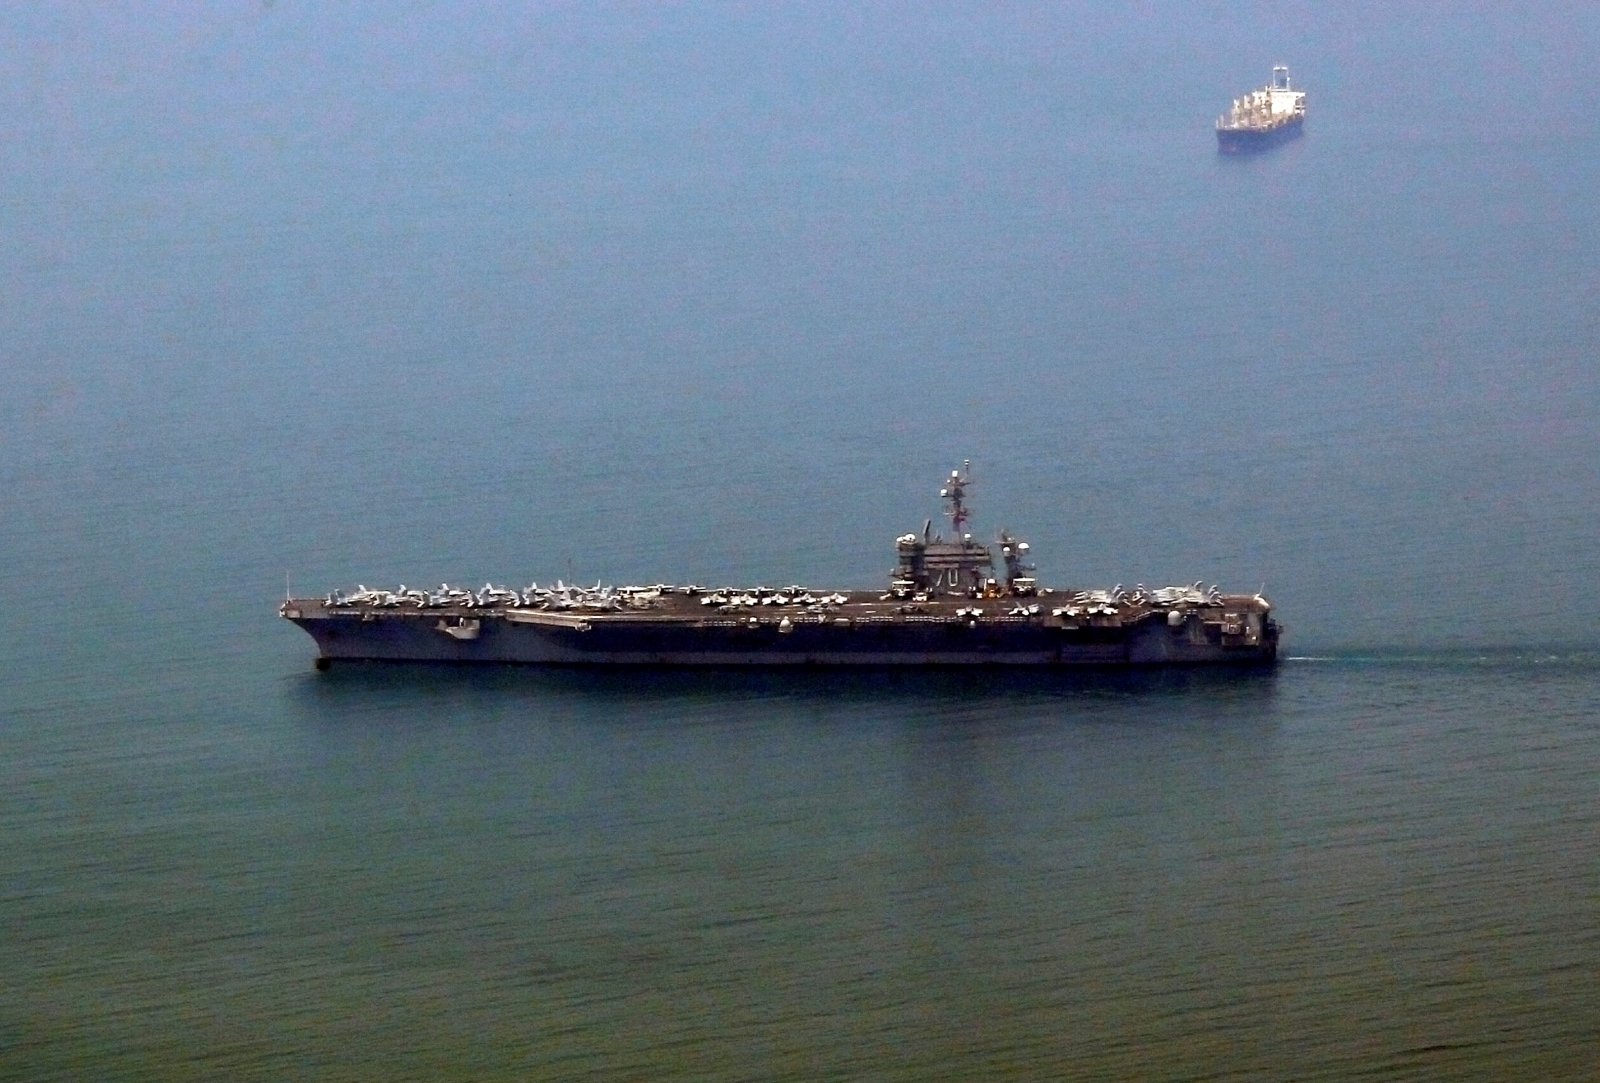 US aircraft carrier in Vietnam